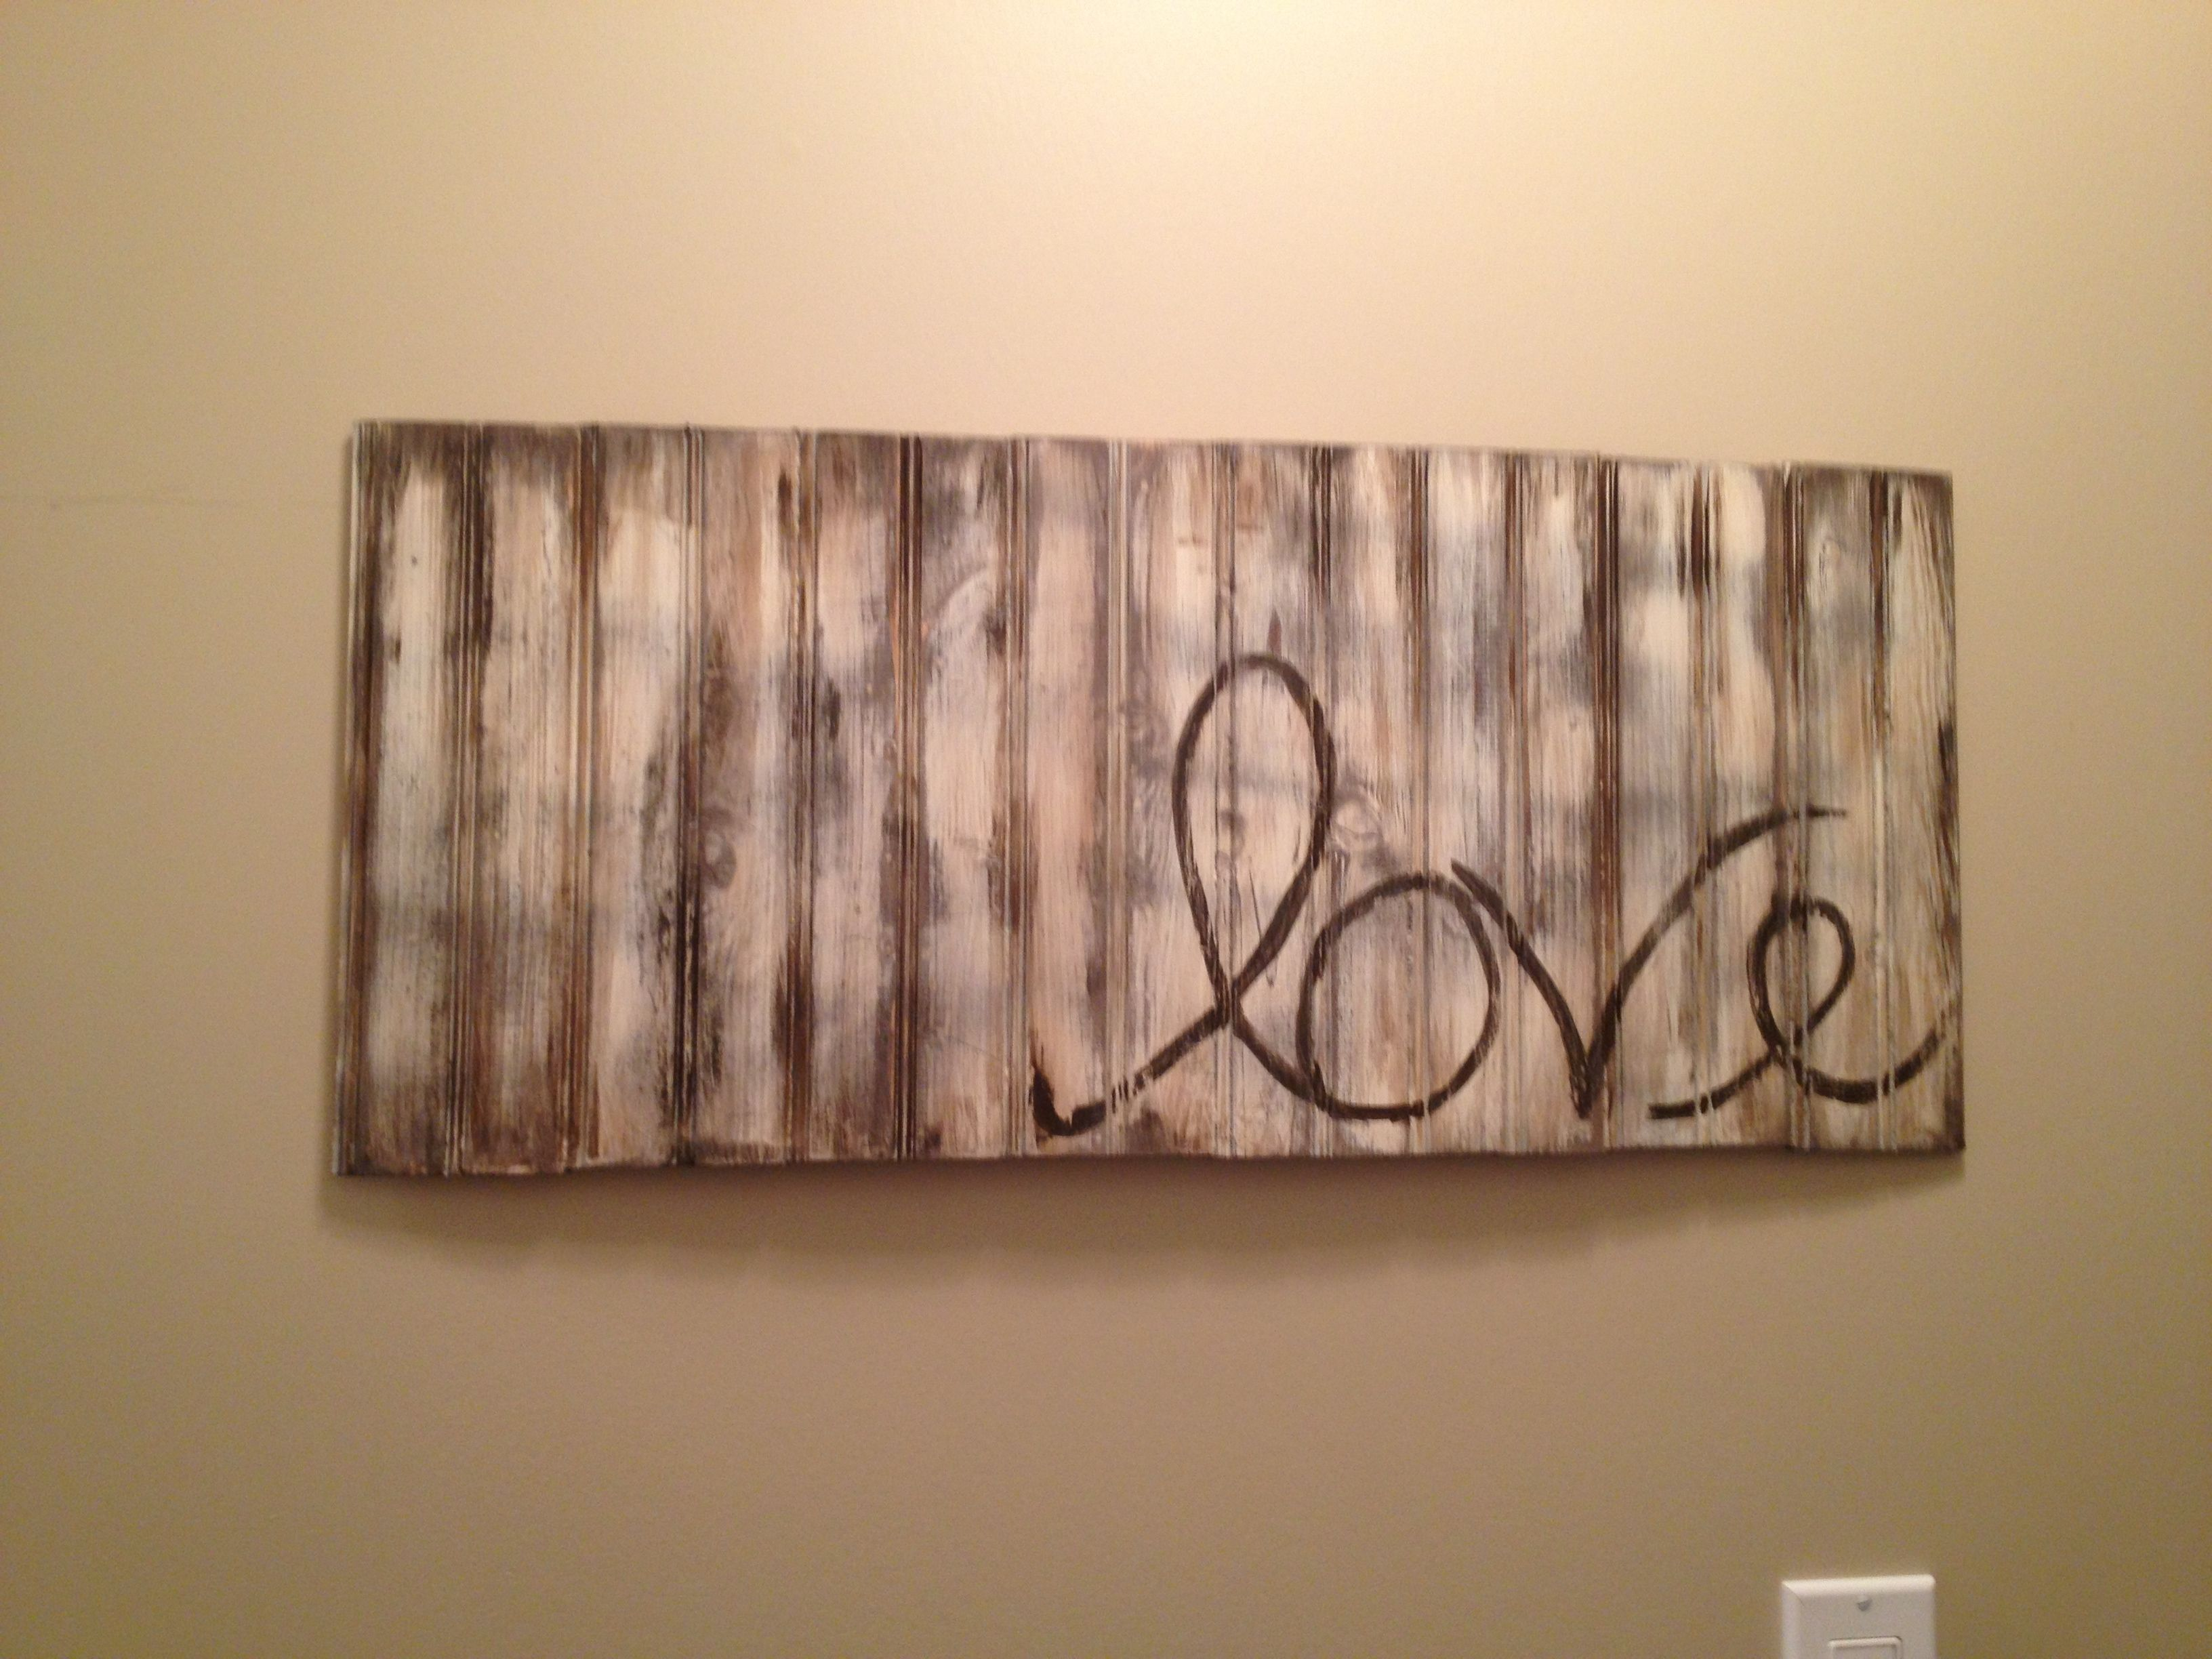 Rustic wood sign craft ideas pinterest for Rustic wood crafts ideas